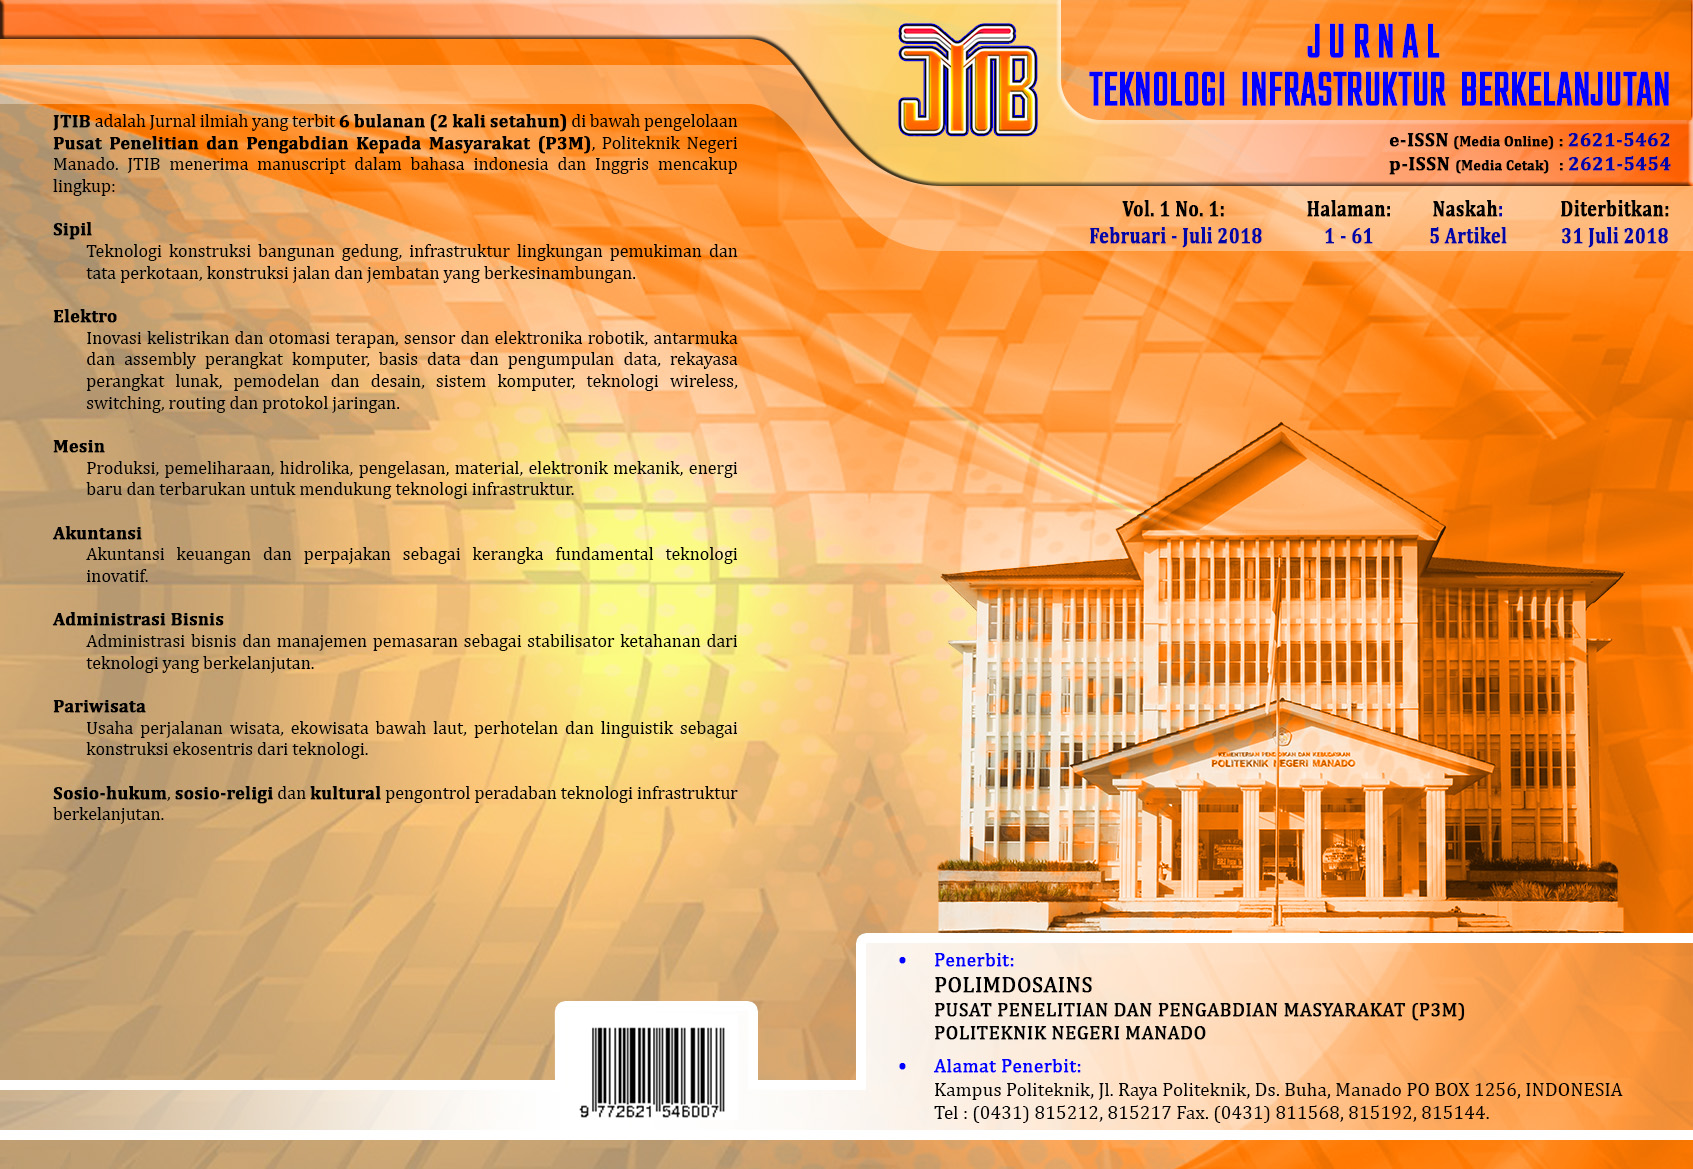 Sampul JTIB Vol. 1 No. 1